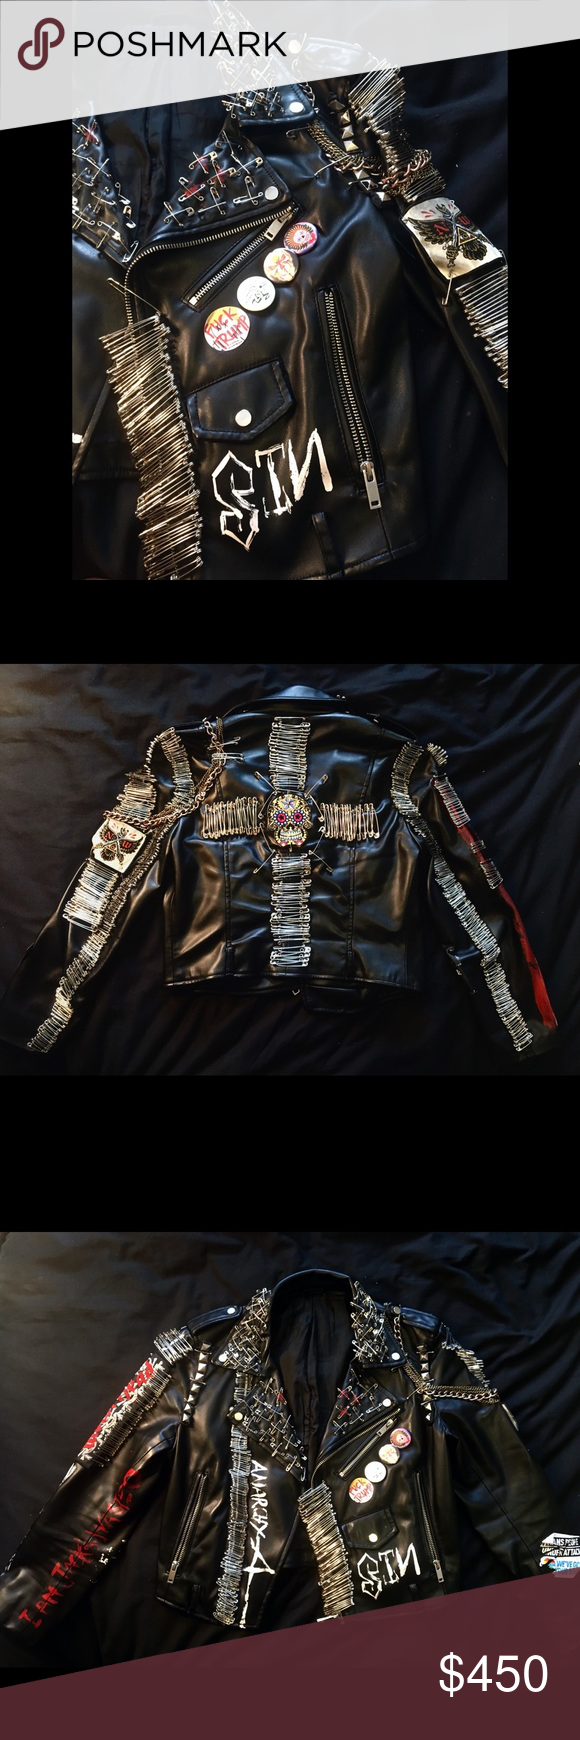 Motorcycle Jacket with Safety Pin Design Safety pin